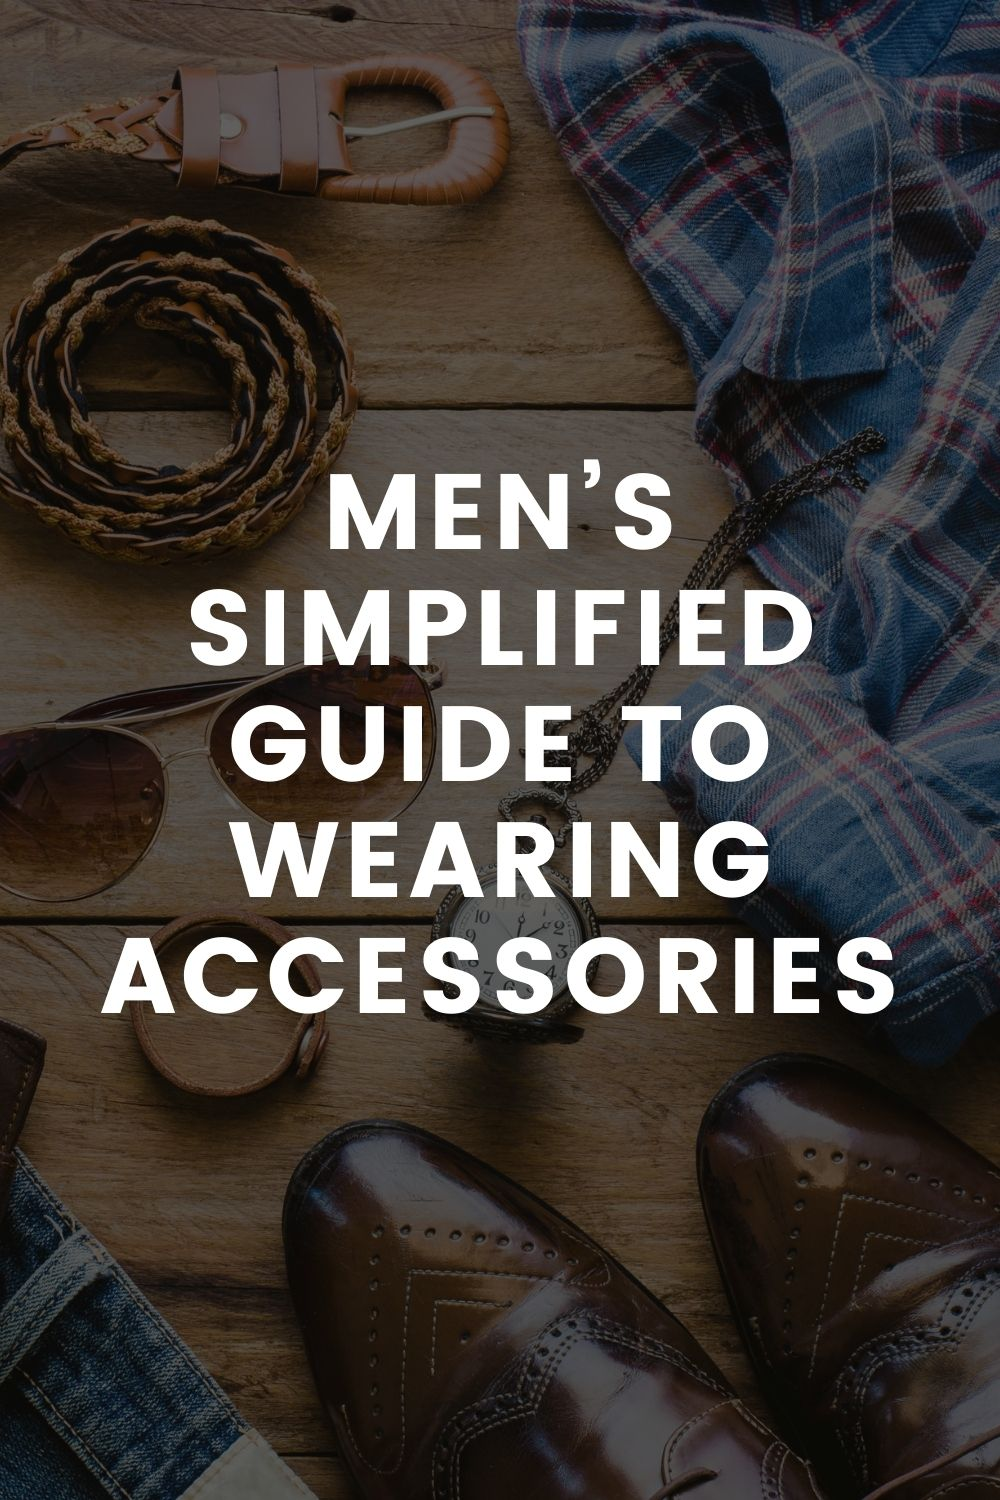 Men's Simplified Guide to Wearing Accessories